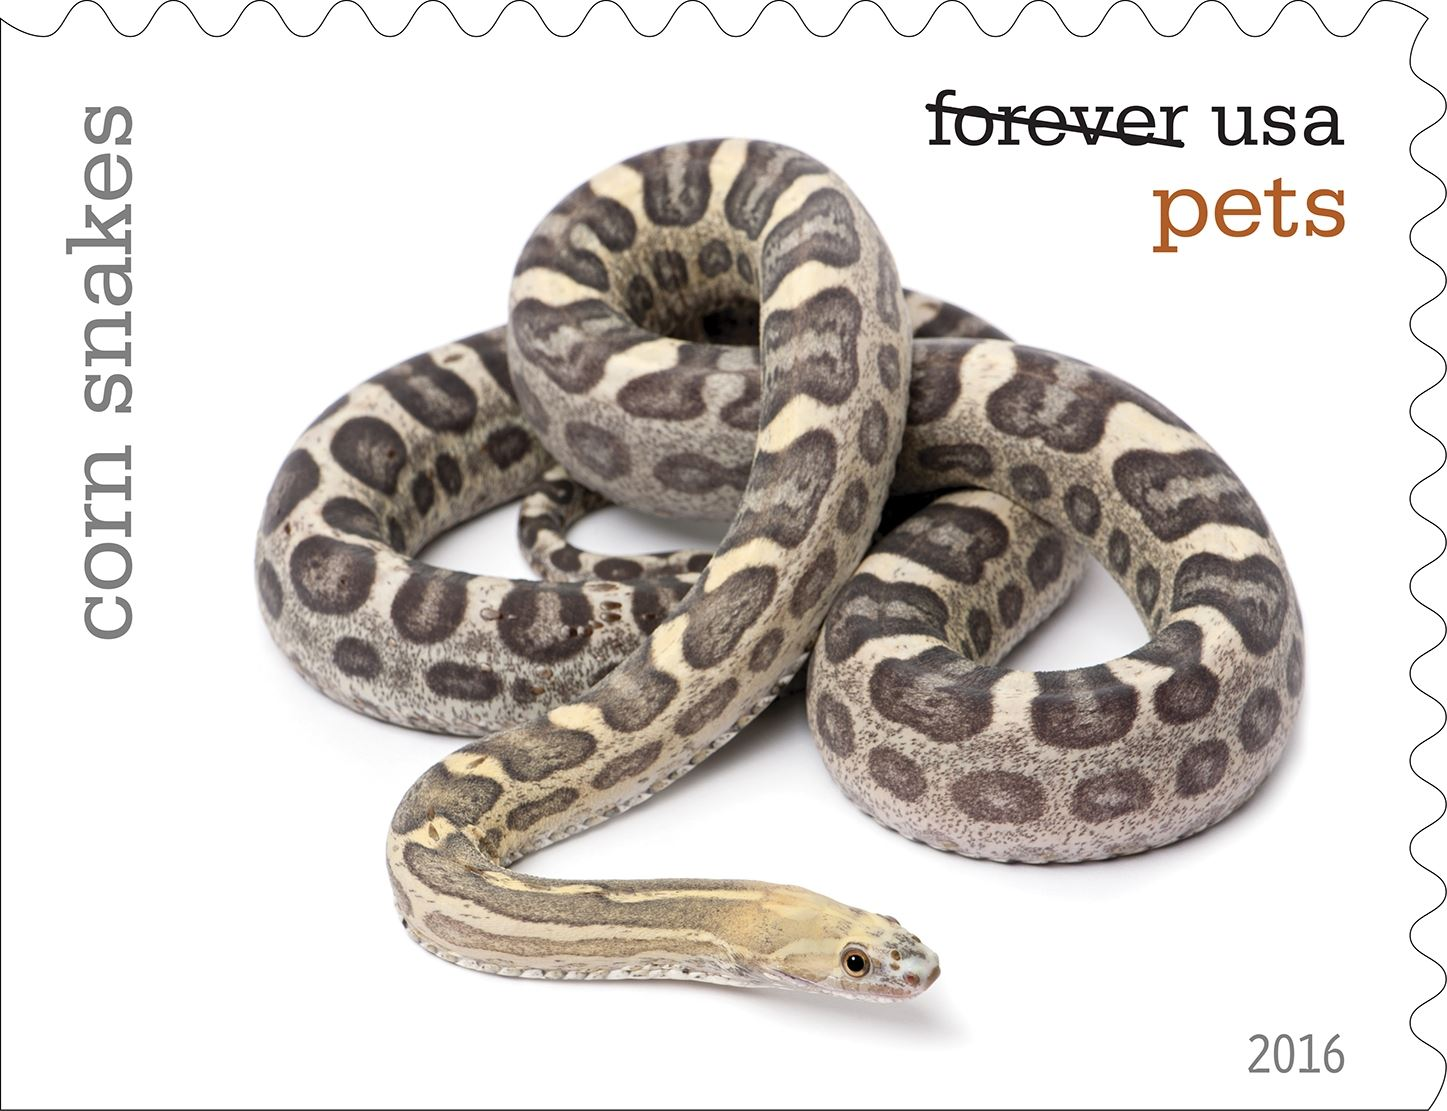 3-0_USPS16STA004d-12 Corn snakes will be among the pets celebrated in an upcoming set of Forever stamps issued by the U.S. Postal Service.